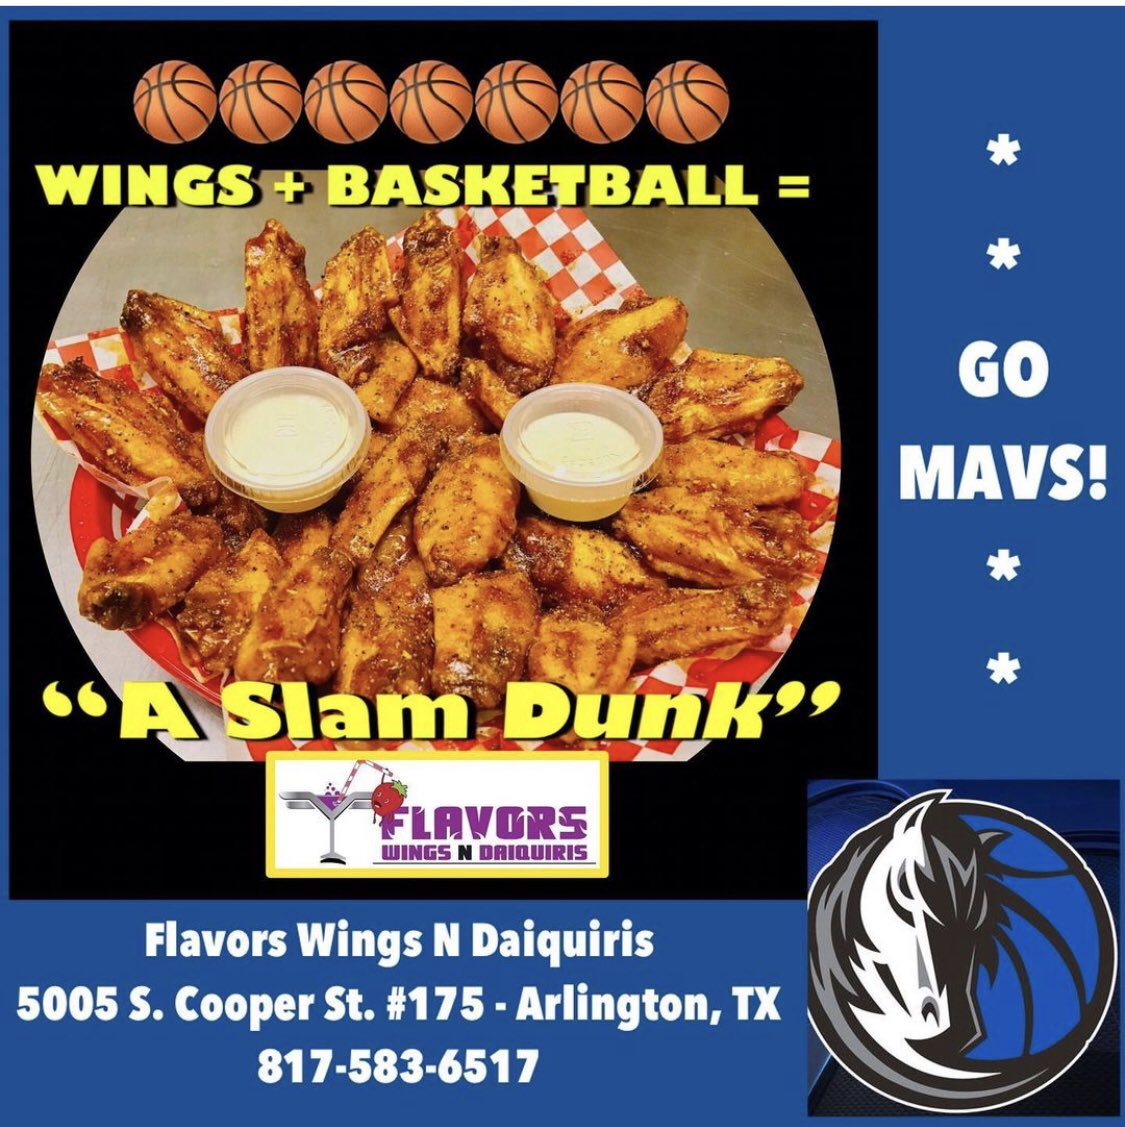 @dallasmavs vs. @chicagobulls TODAY! Got Your Wings & Catfish?  Flavors Wings N Daiquiris 5005 S. Cooper St. #175 Arlington, TX   817-583-6517 #wings #catfish #daiquiris #arlingtonTX #DFW  #Explore #GreatFood  #NBA #GreatCustomerService #BOB  #VeteranOwned